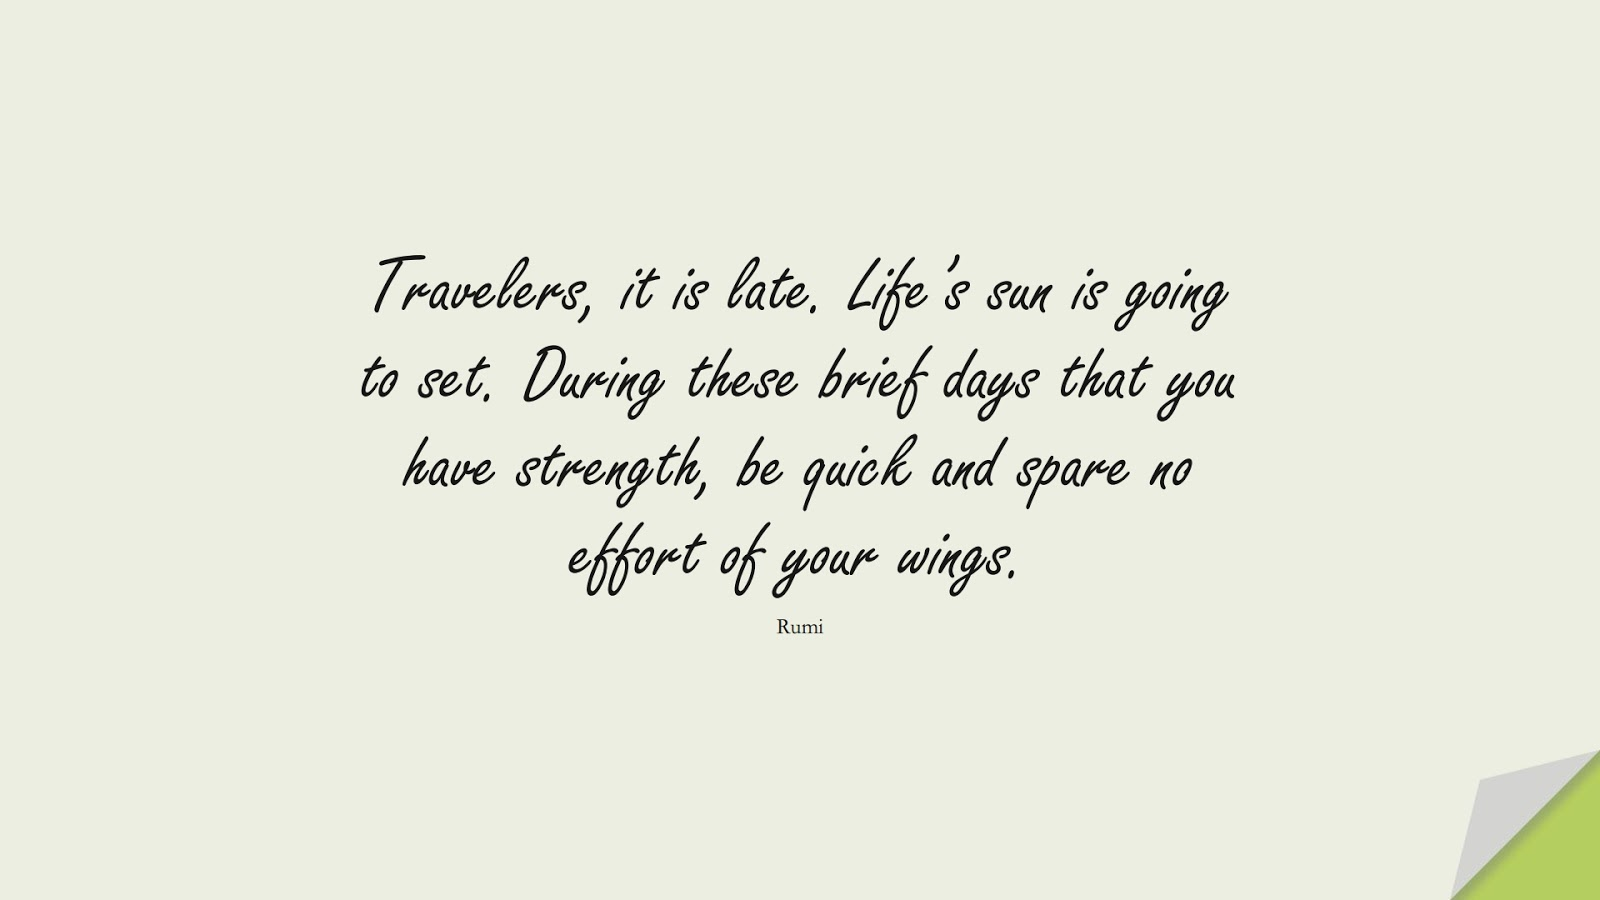 Travelers, it is late. Life's sun is going to set. During these brief days that you have strength, be quick and spare no effort of your wings. (Rumi);  #RumiQuotes